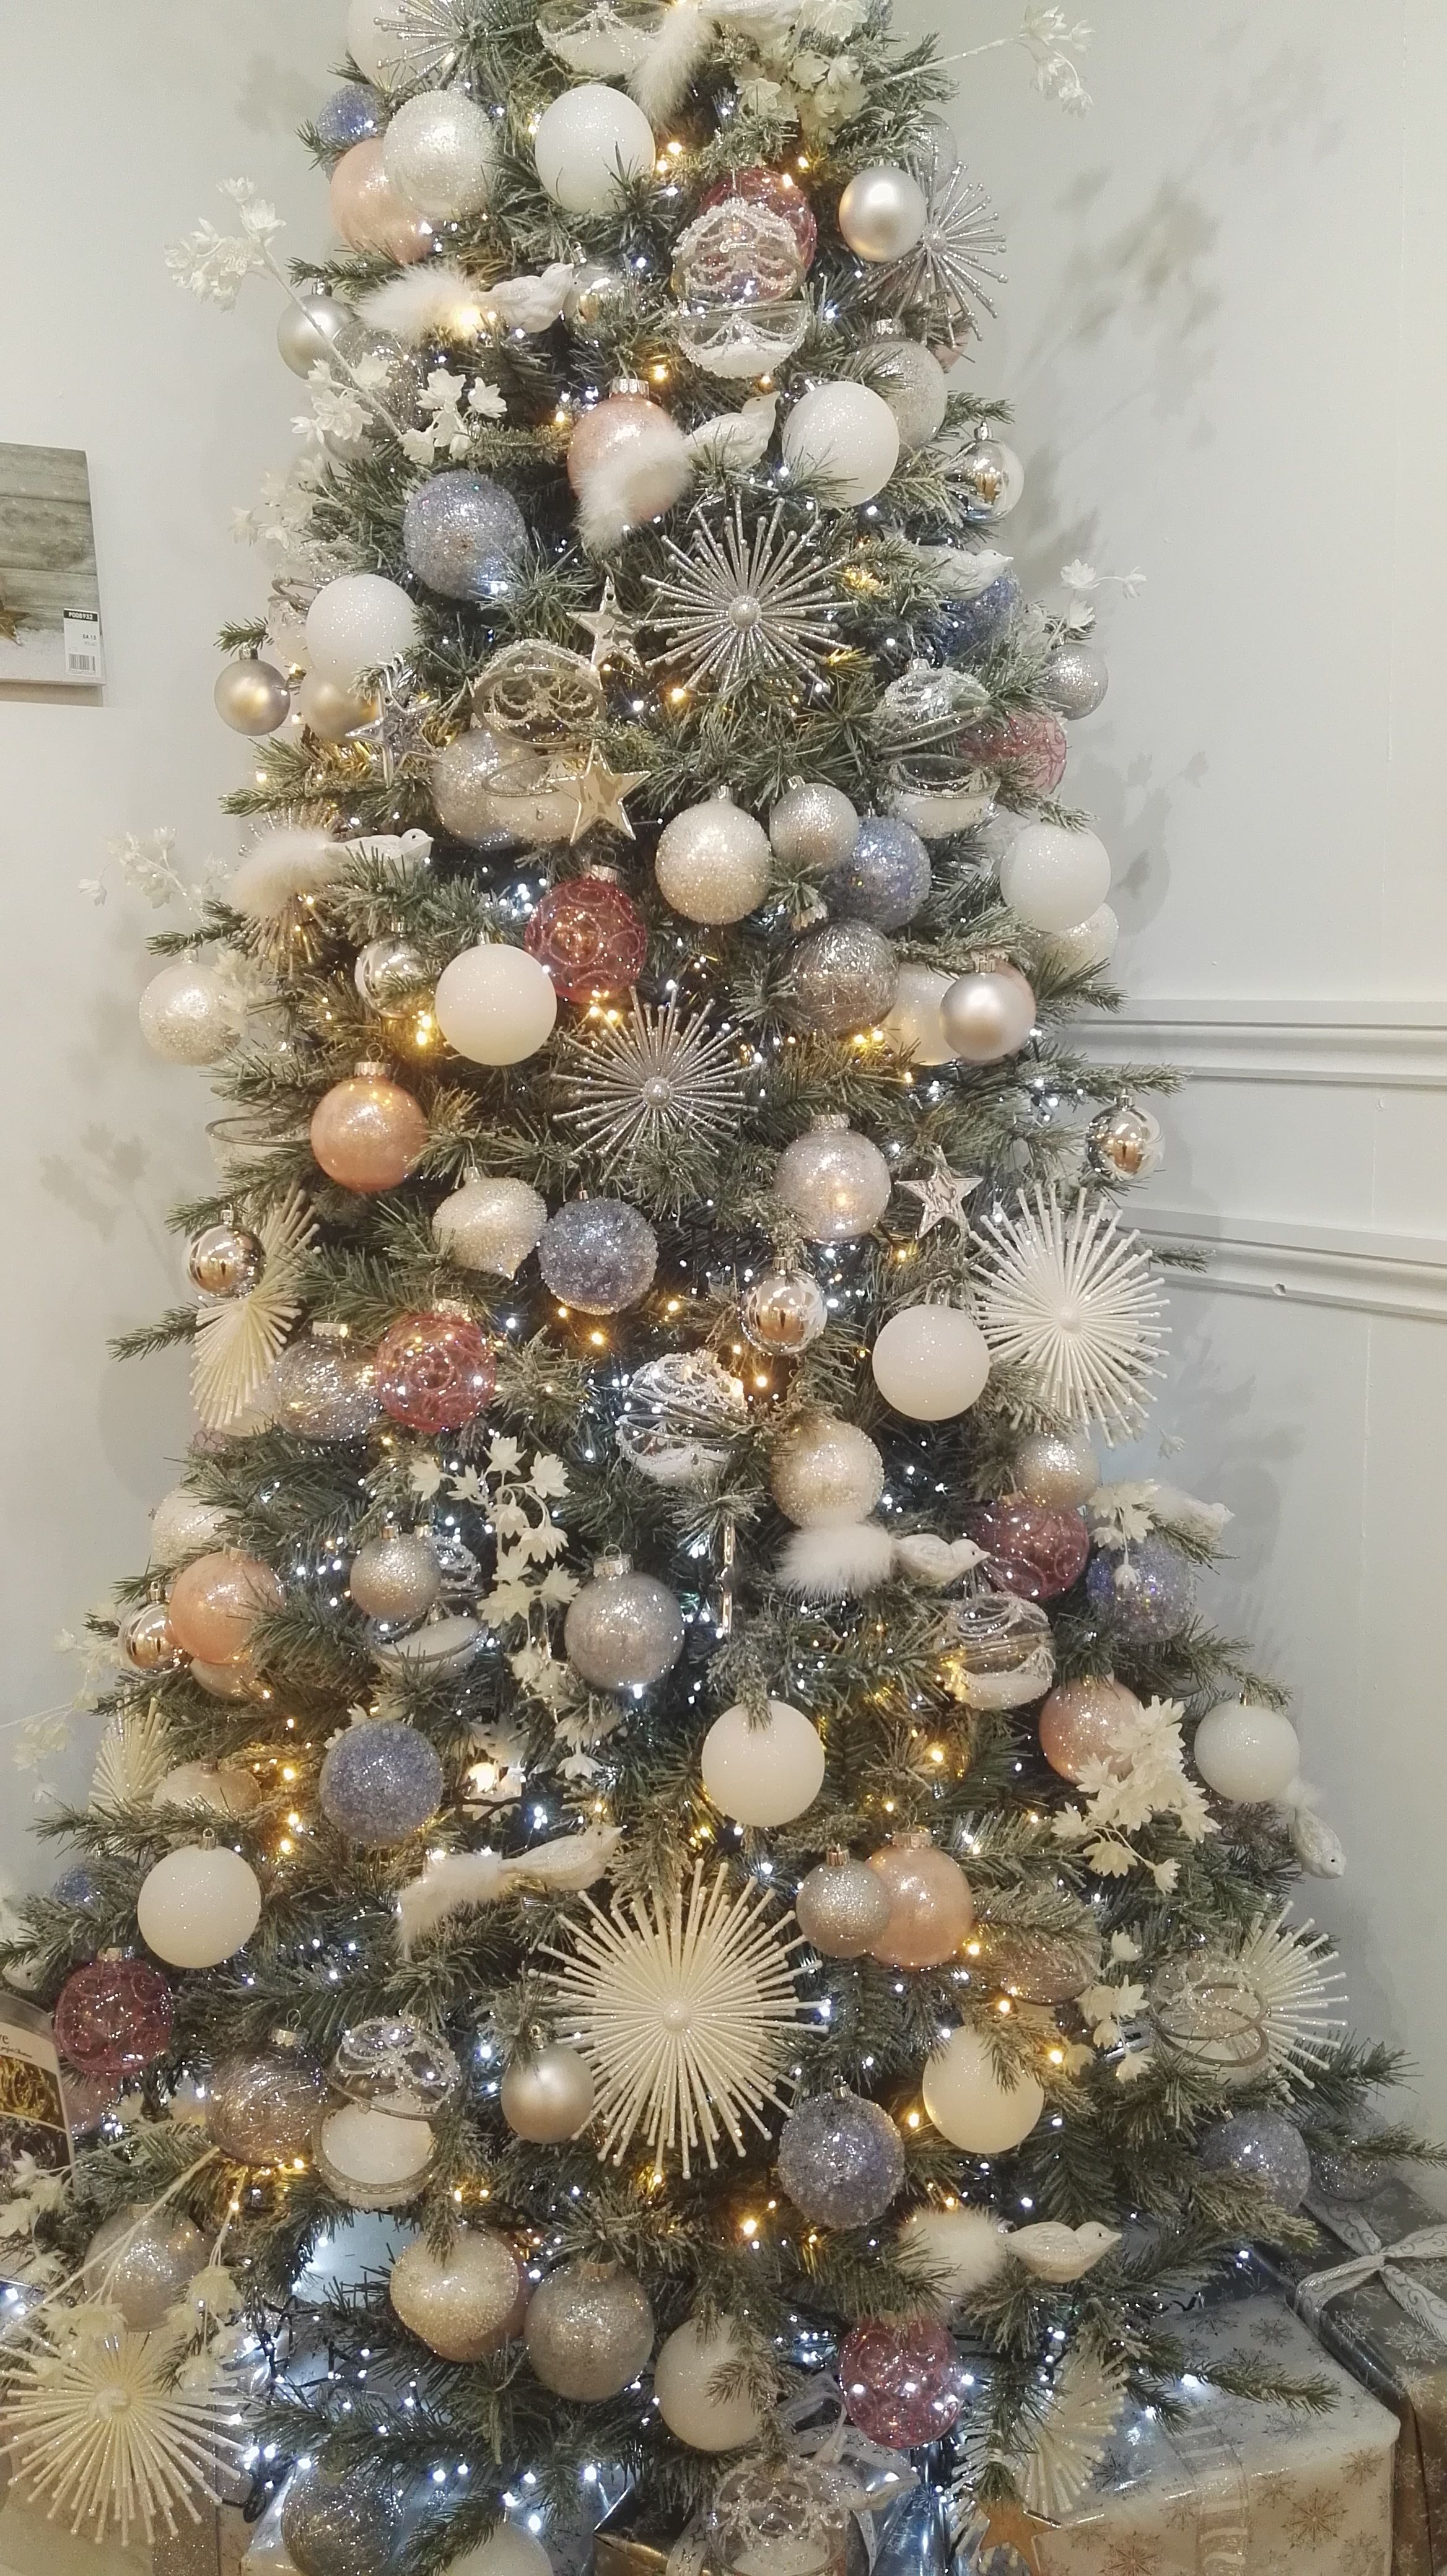 A Sophisticated Tree With Large Starburst White Birds And Baubles Filled Wi Christmas Themes Decorations Christmas Decorations Tree Christmas Tree Decorations